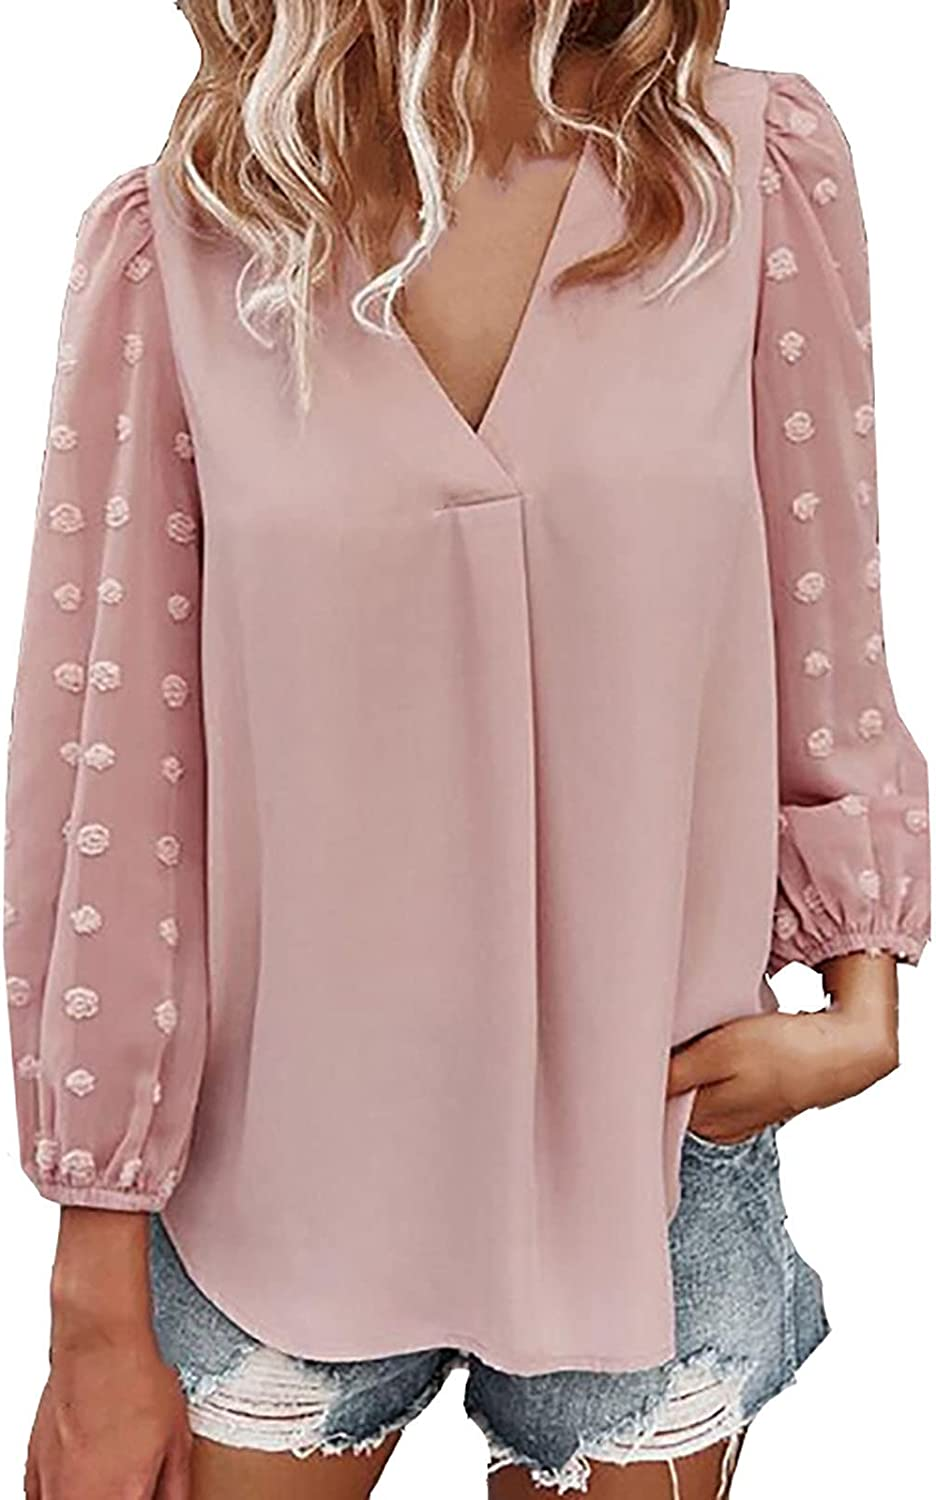 Chiffon Shirts for Women Sexy V Ball Credence Long Embroidery Neck Nippon regular agency S Hair